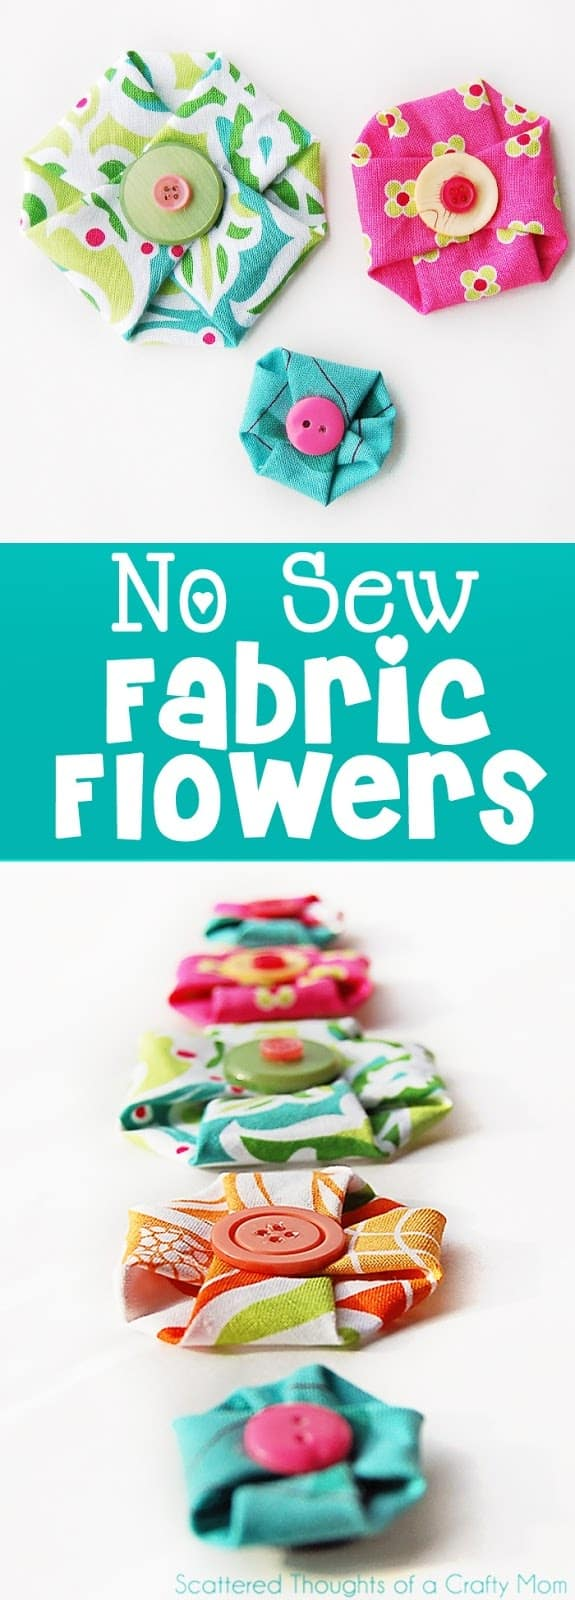 Sofa 84 Inch No Sew Fabric Flowers - Scattered Thoughts Of A Crafty Mom